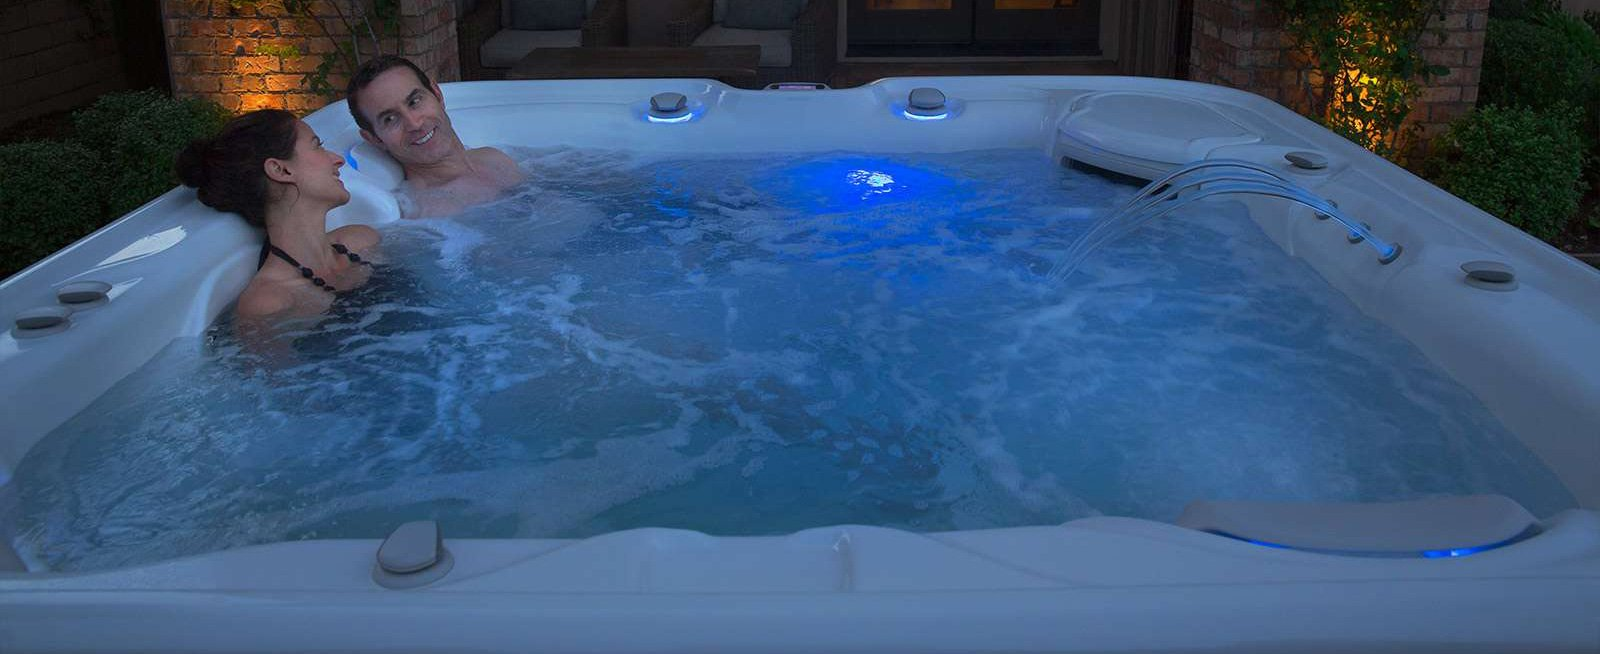 The Health Benefits of a Hot Tub or Spa